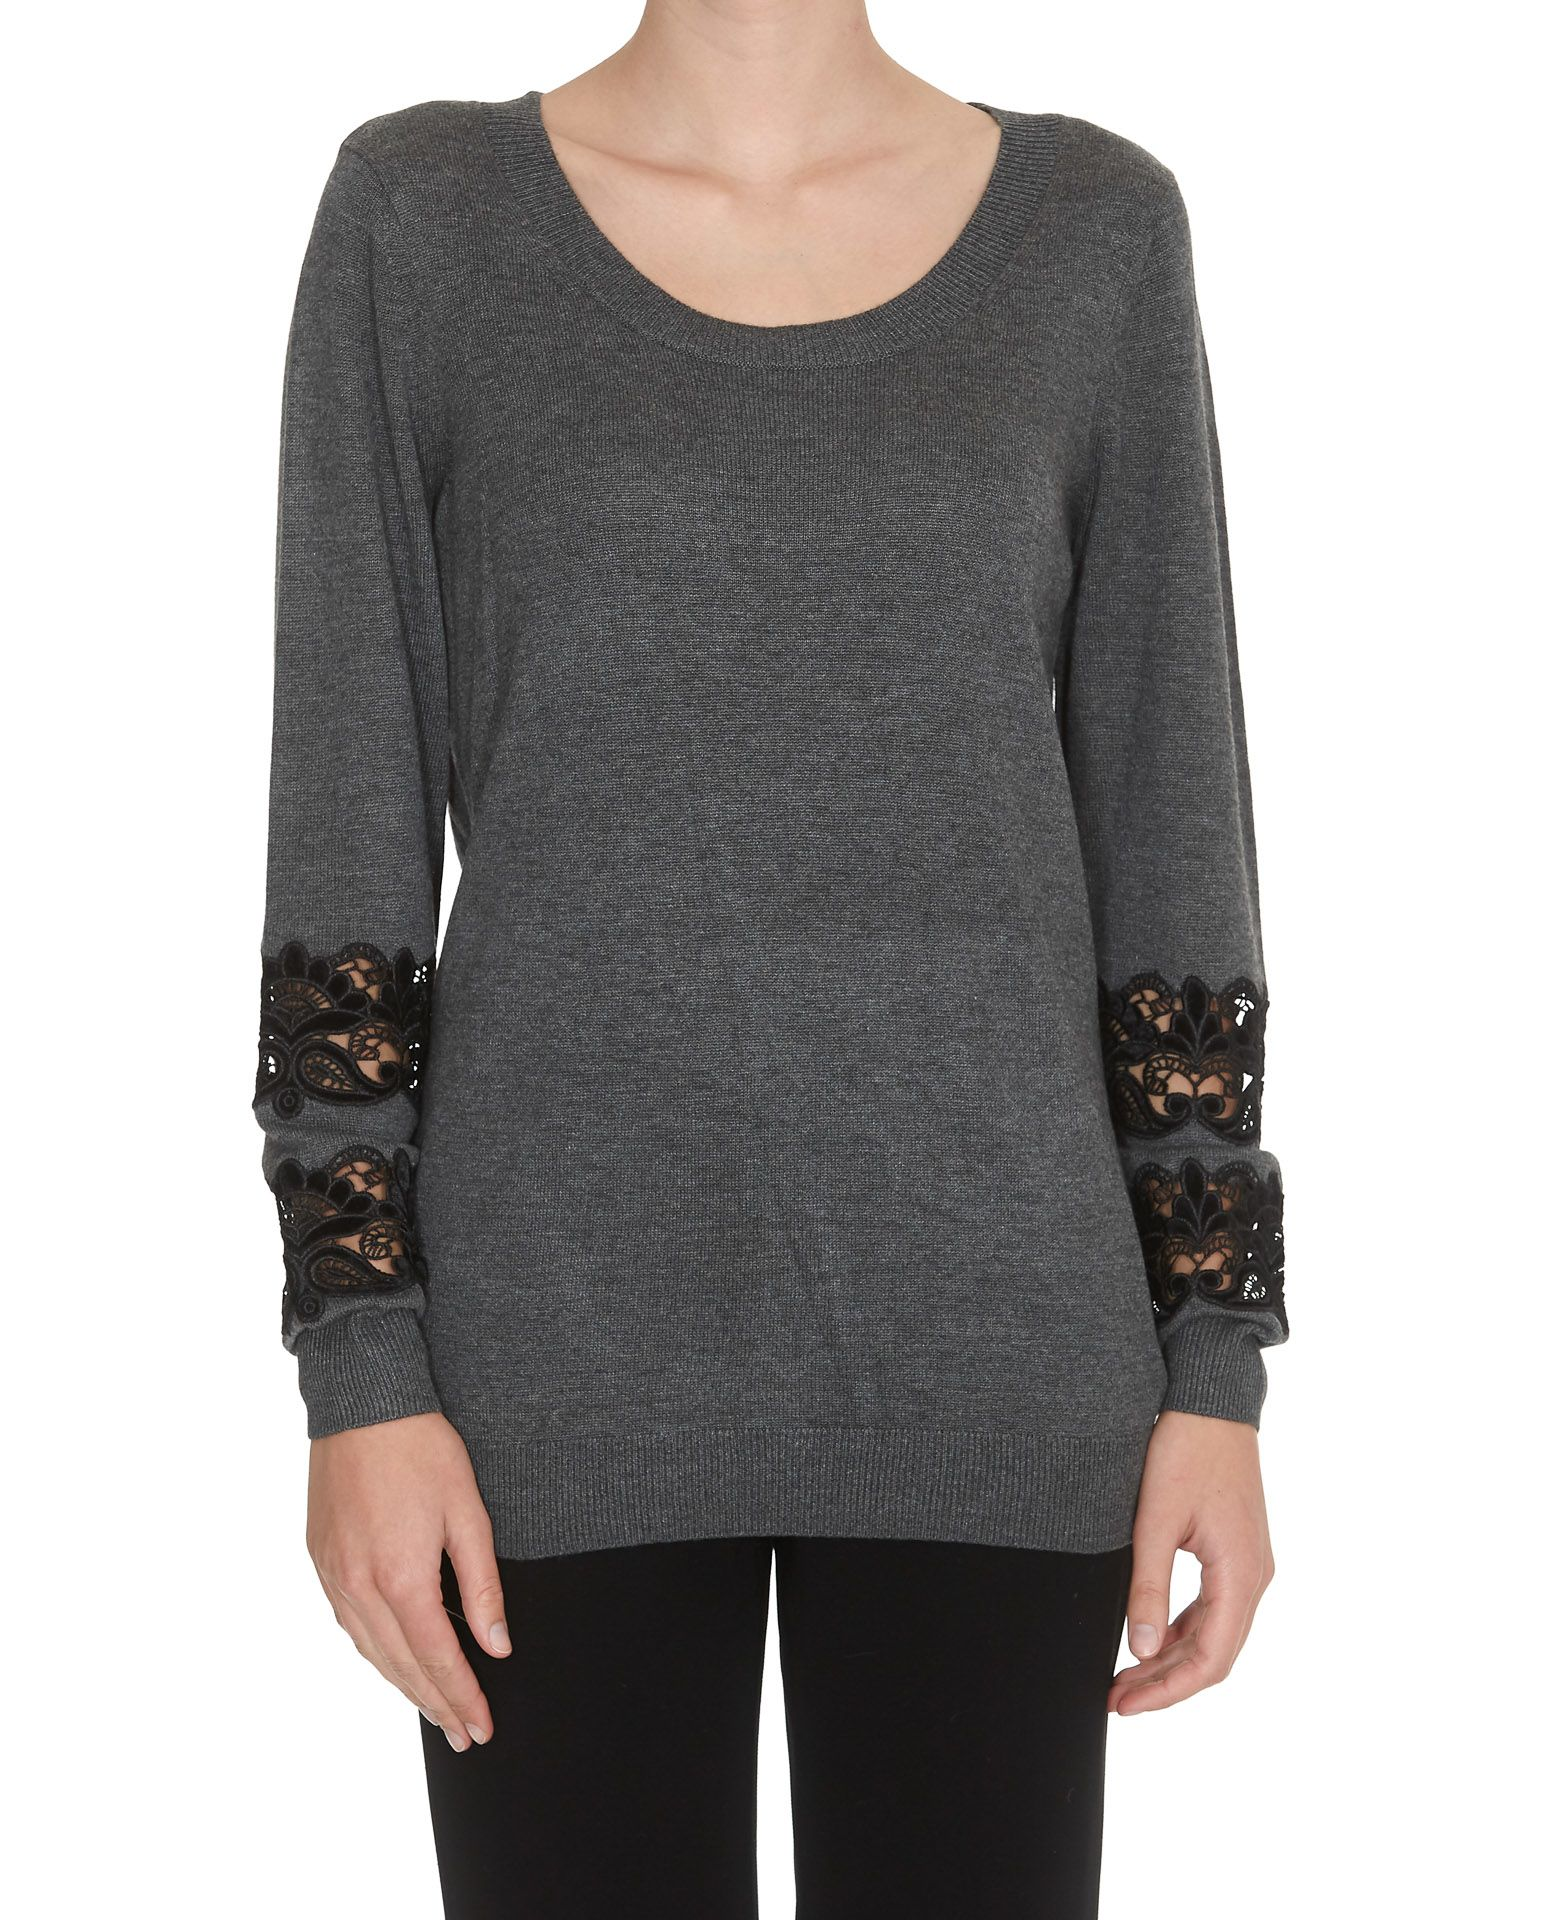 Michael Kors Lace Detail Sweater